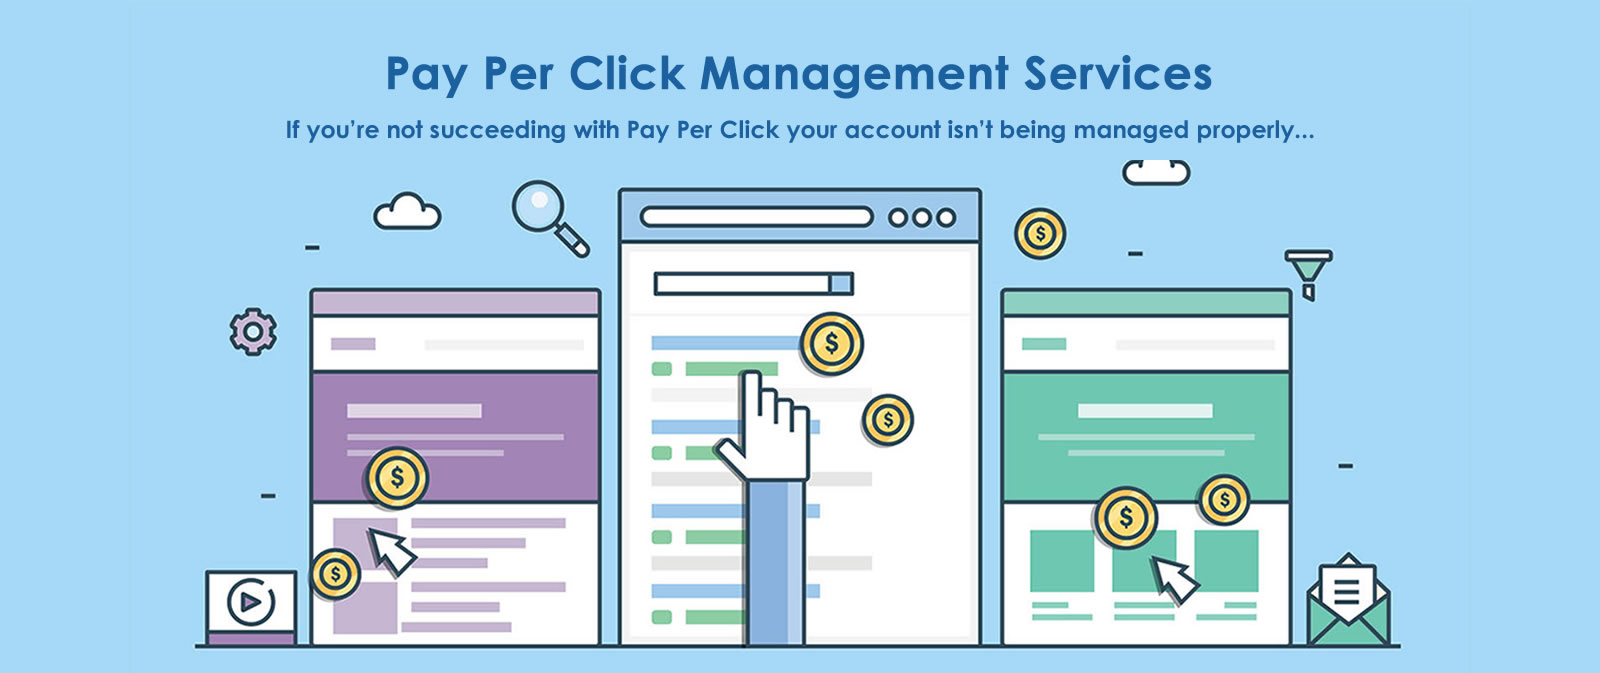 best ppc management company tampa clearwater florida